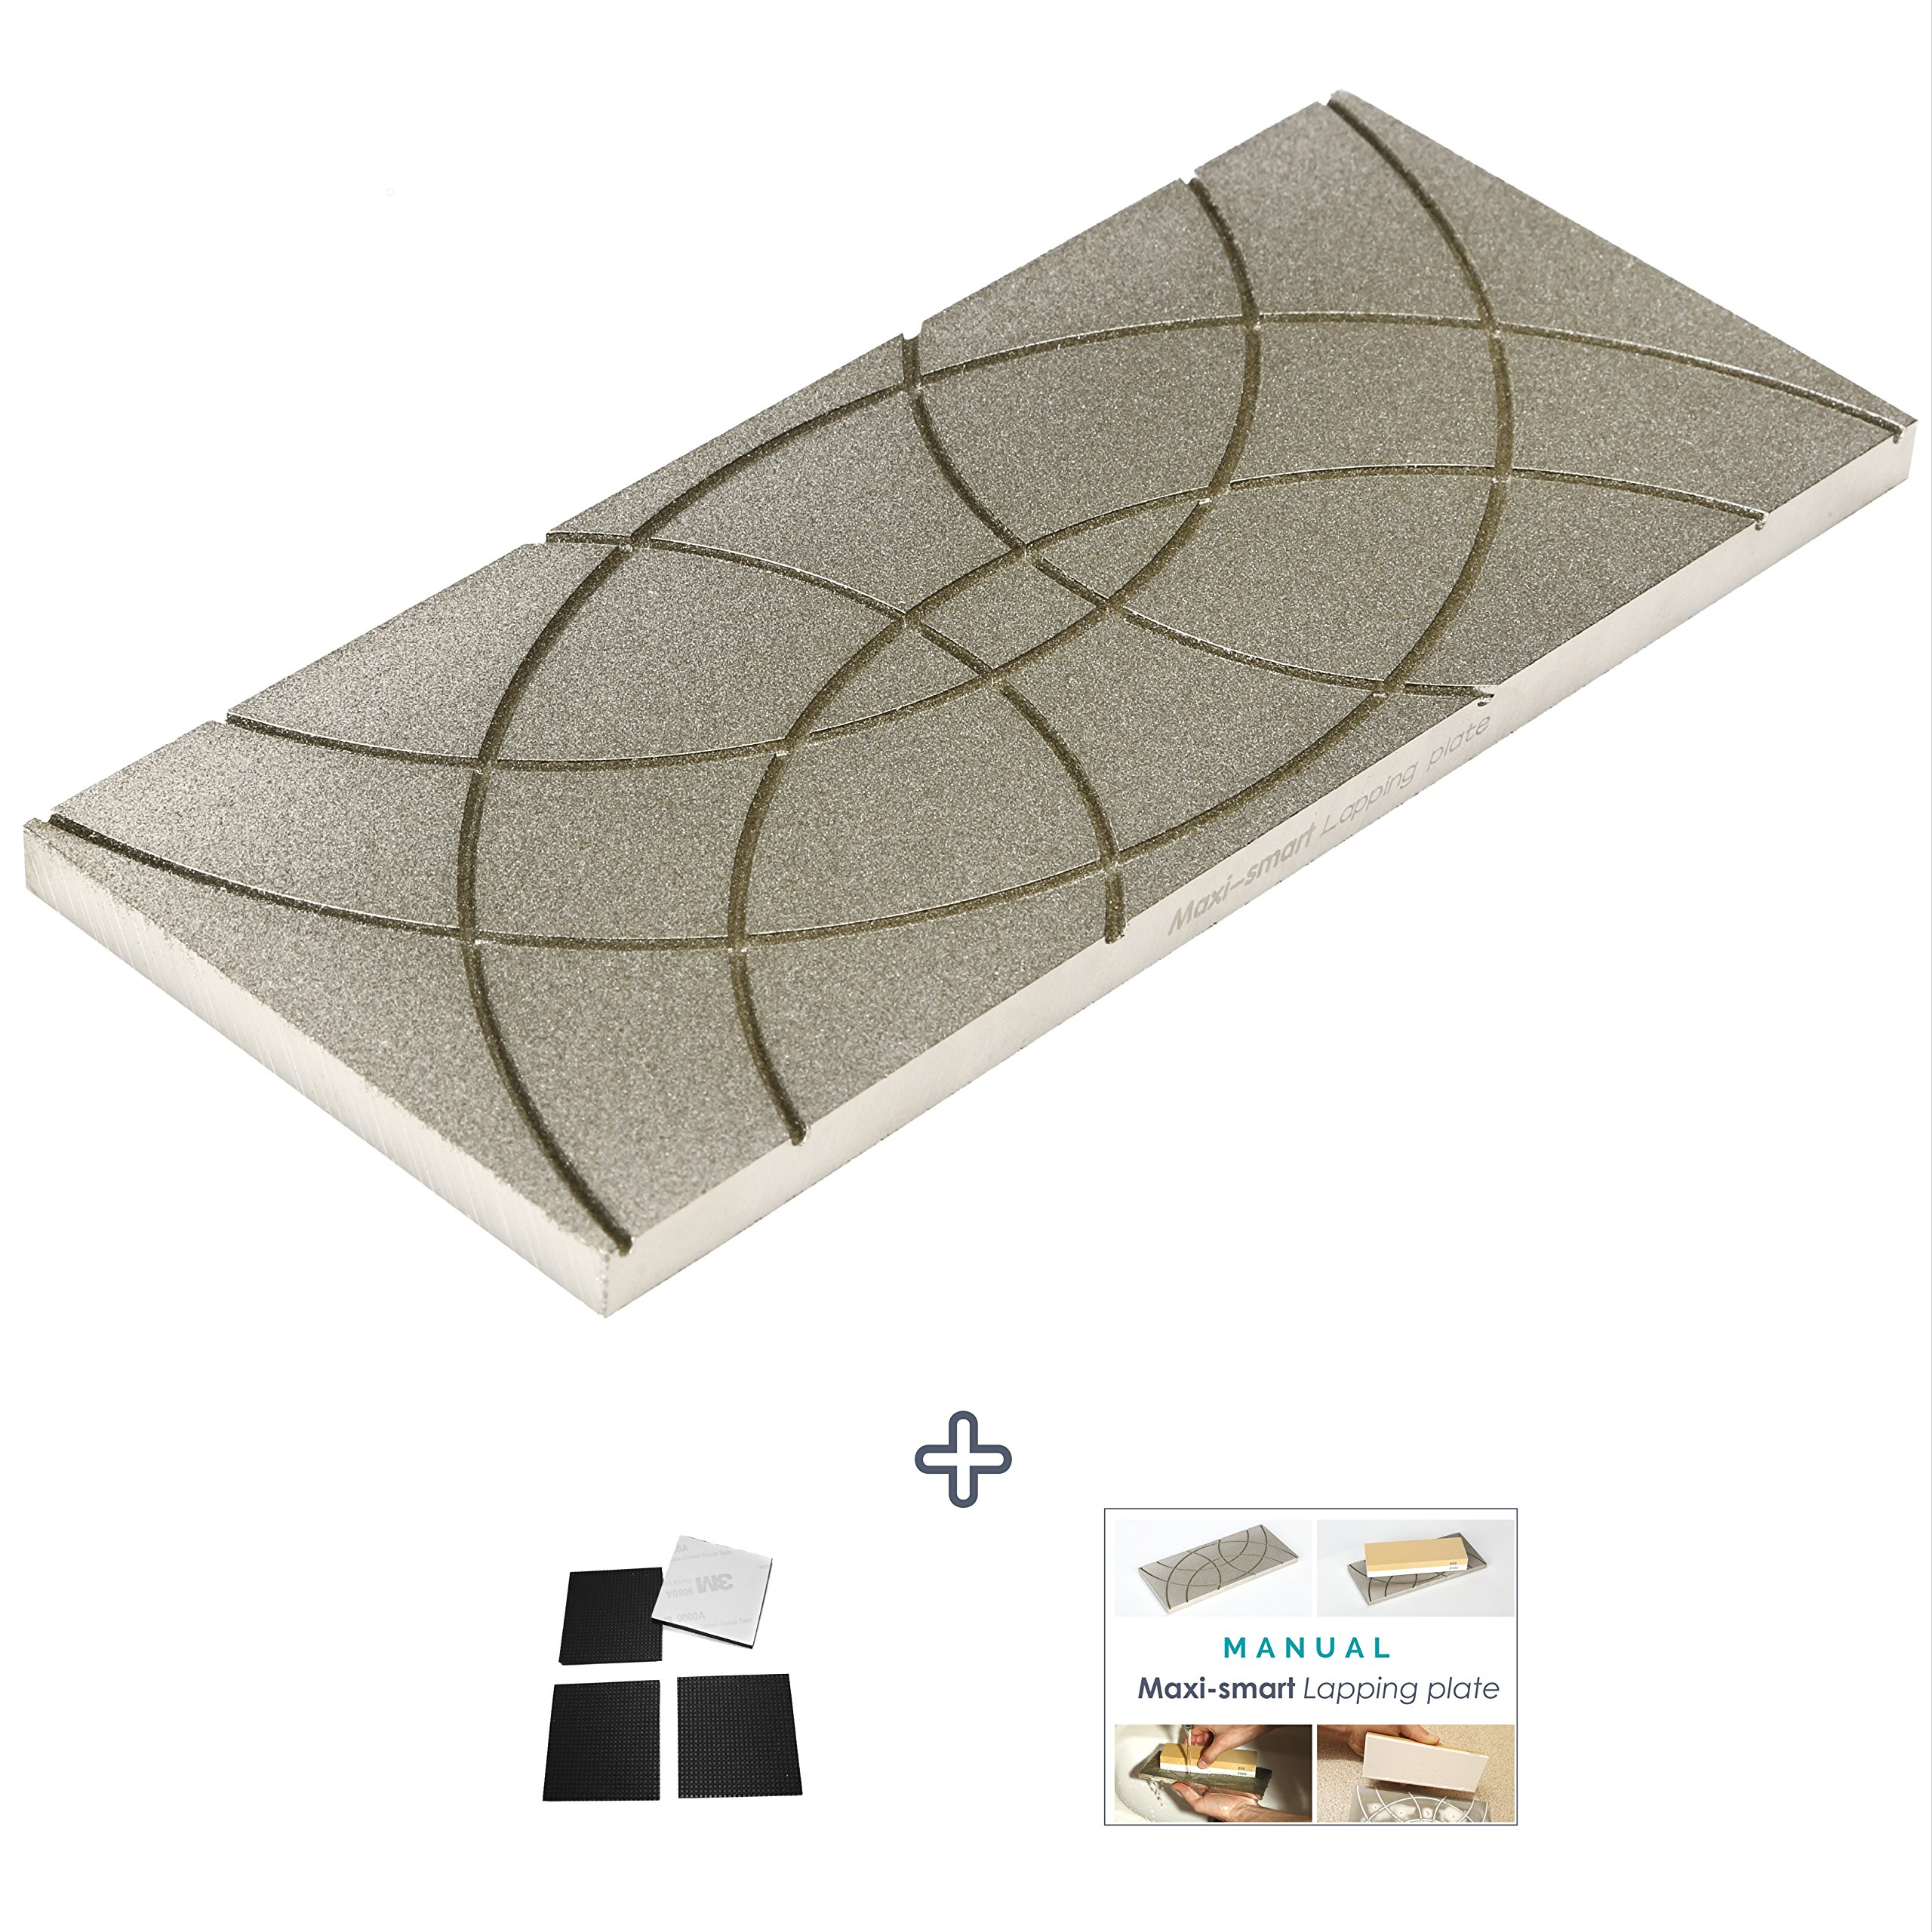 "Maxi-smart Lapping Plate | Diamond Flattening Stone for 400 - 10k grit Waterstones, Oil Stones, Synthetic Stones | 9,6"" x 4,2"" x 0,4"" 